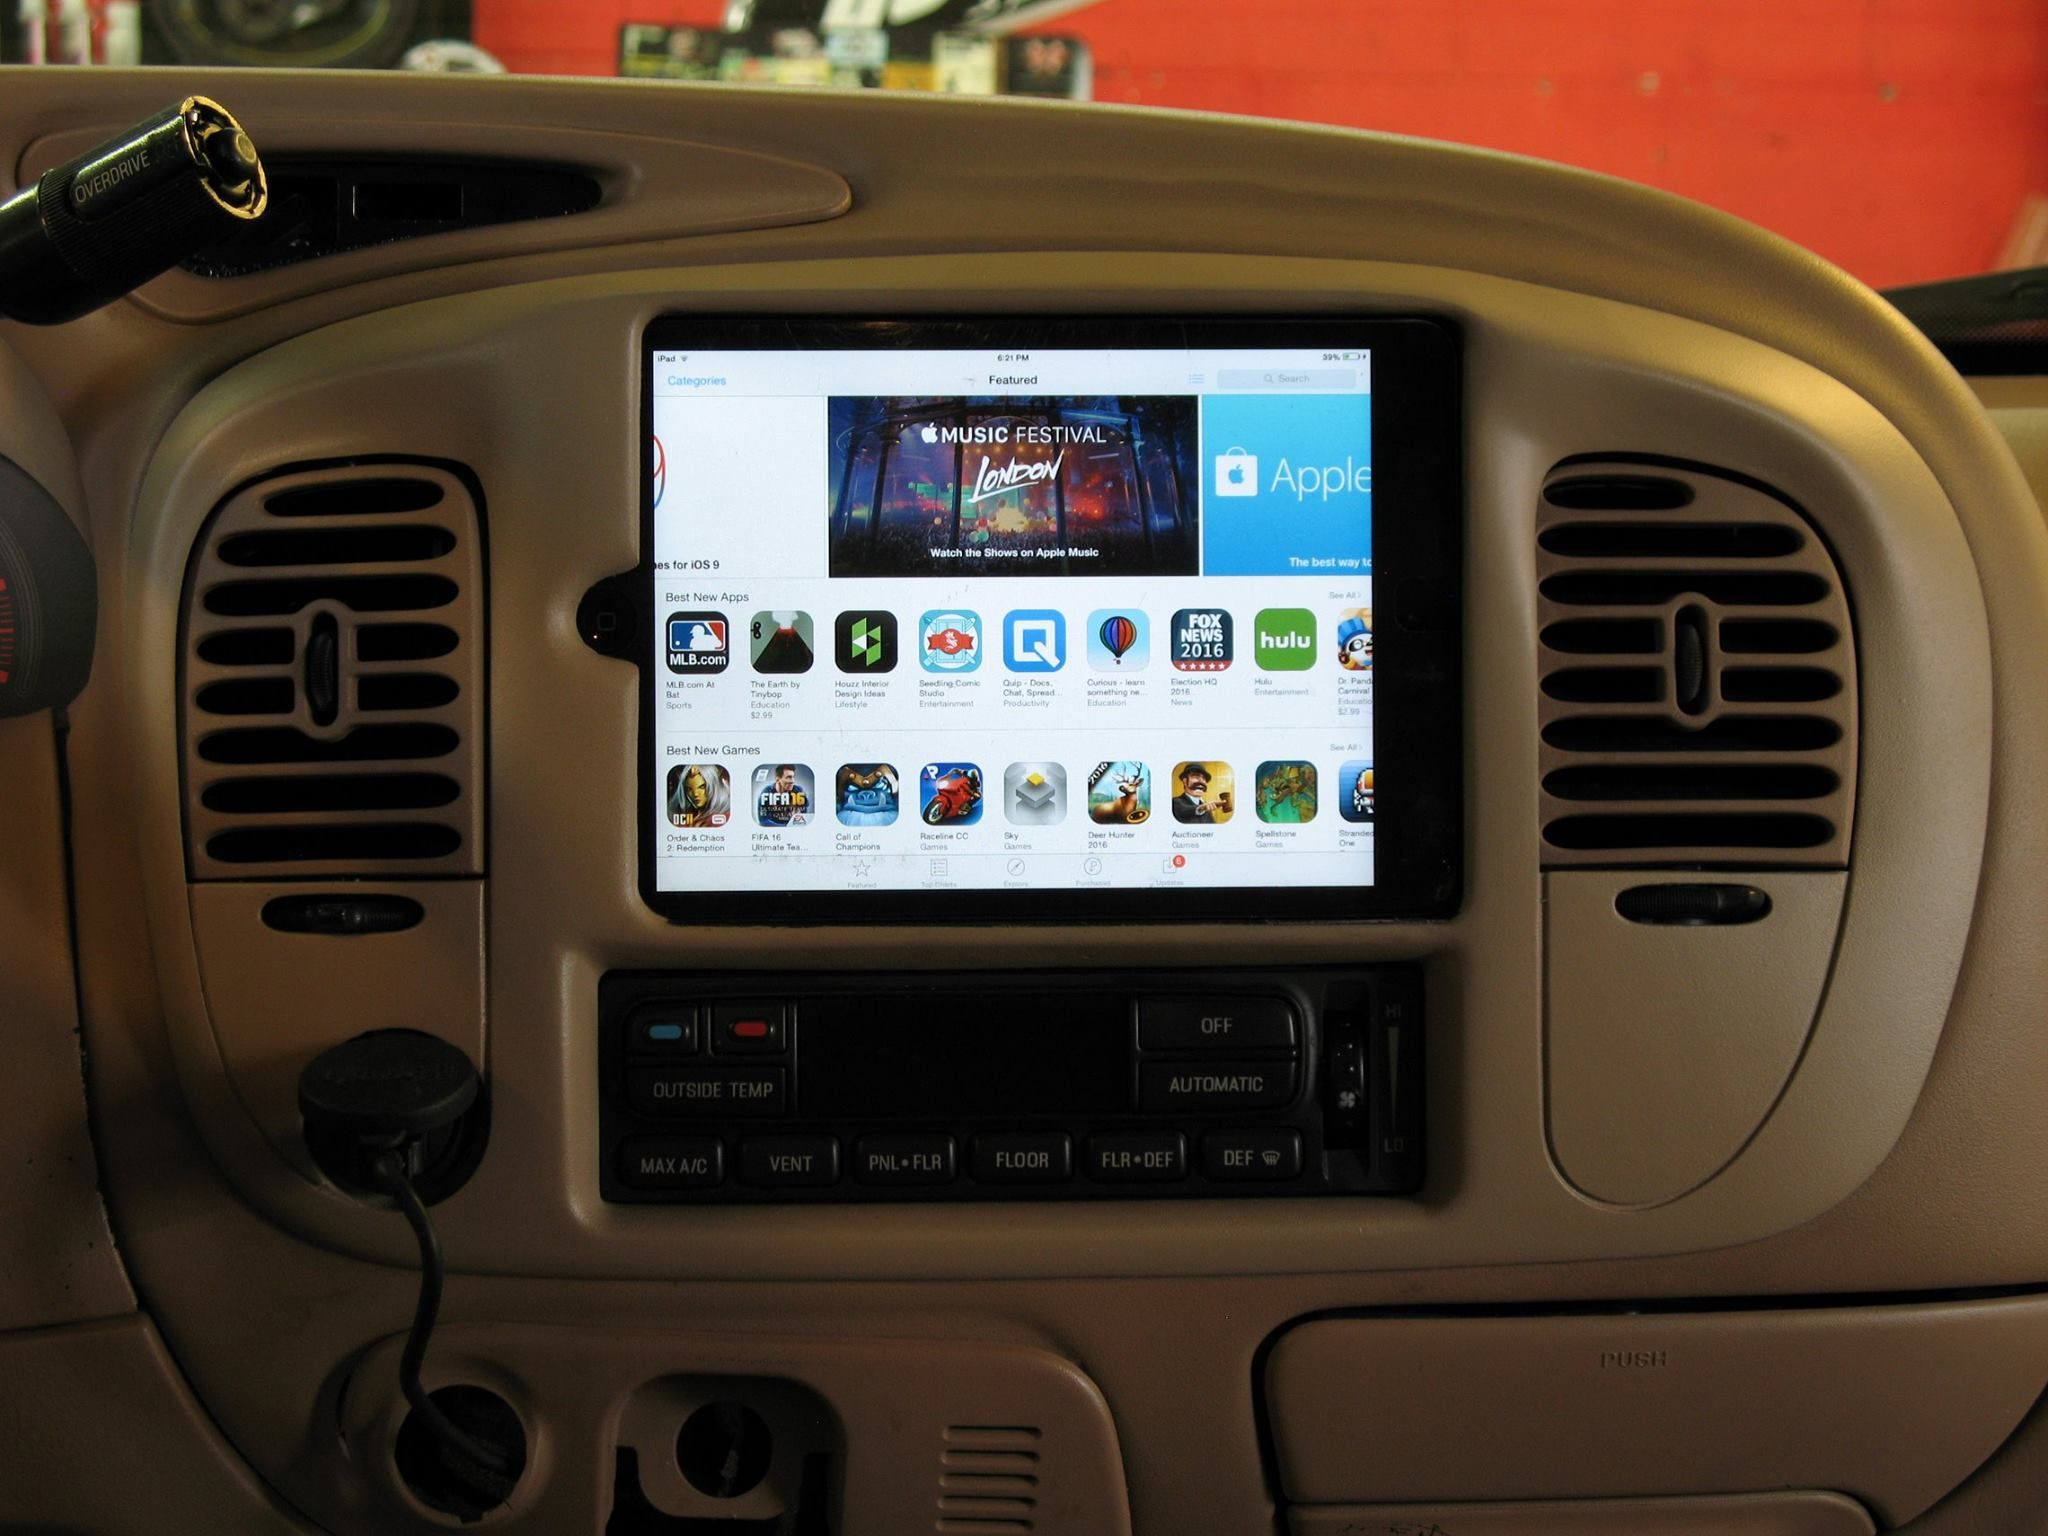 We custom fabricated an ipad mini into the factory radio location and mounted the pioneer